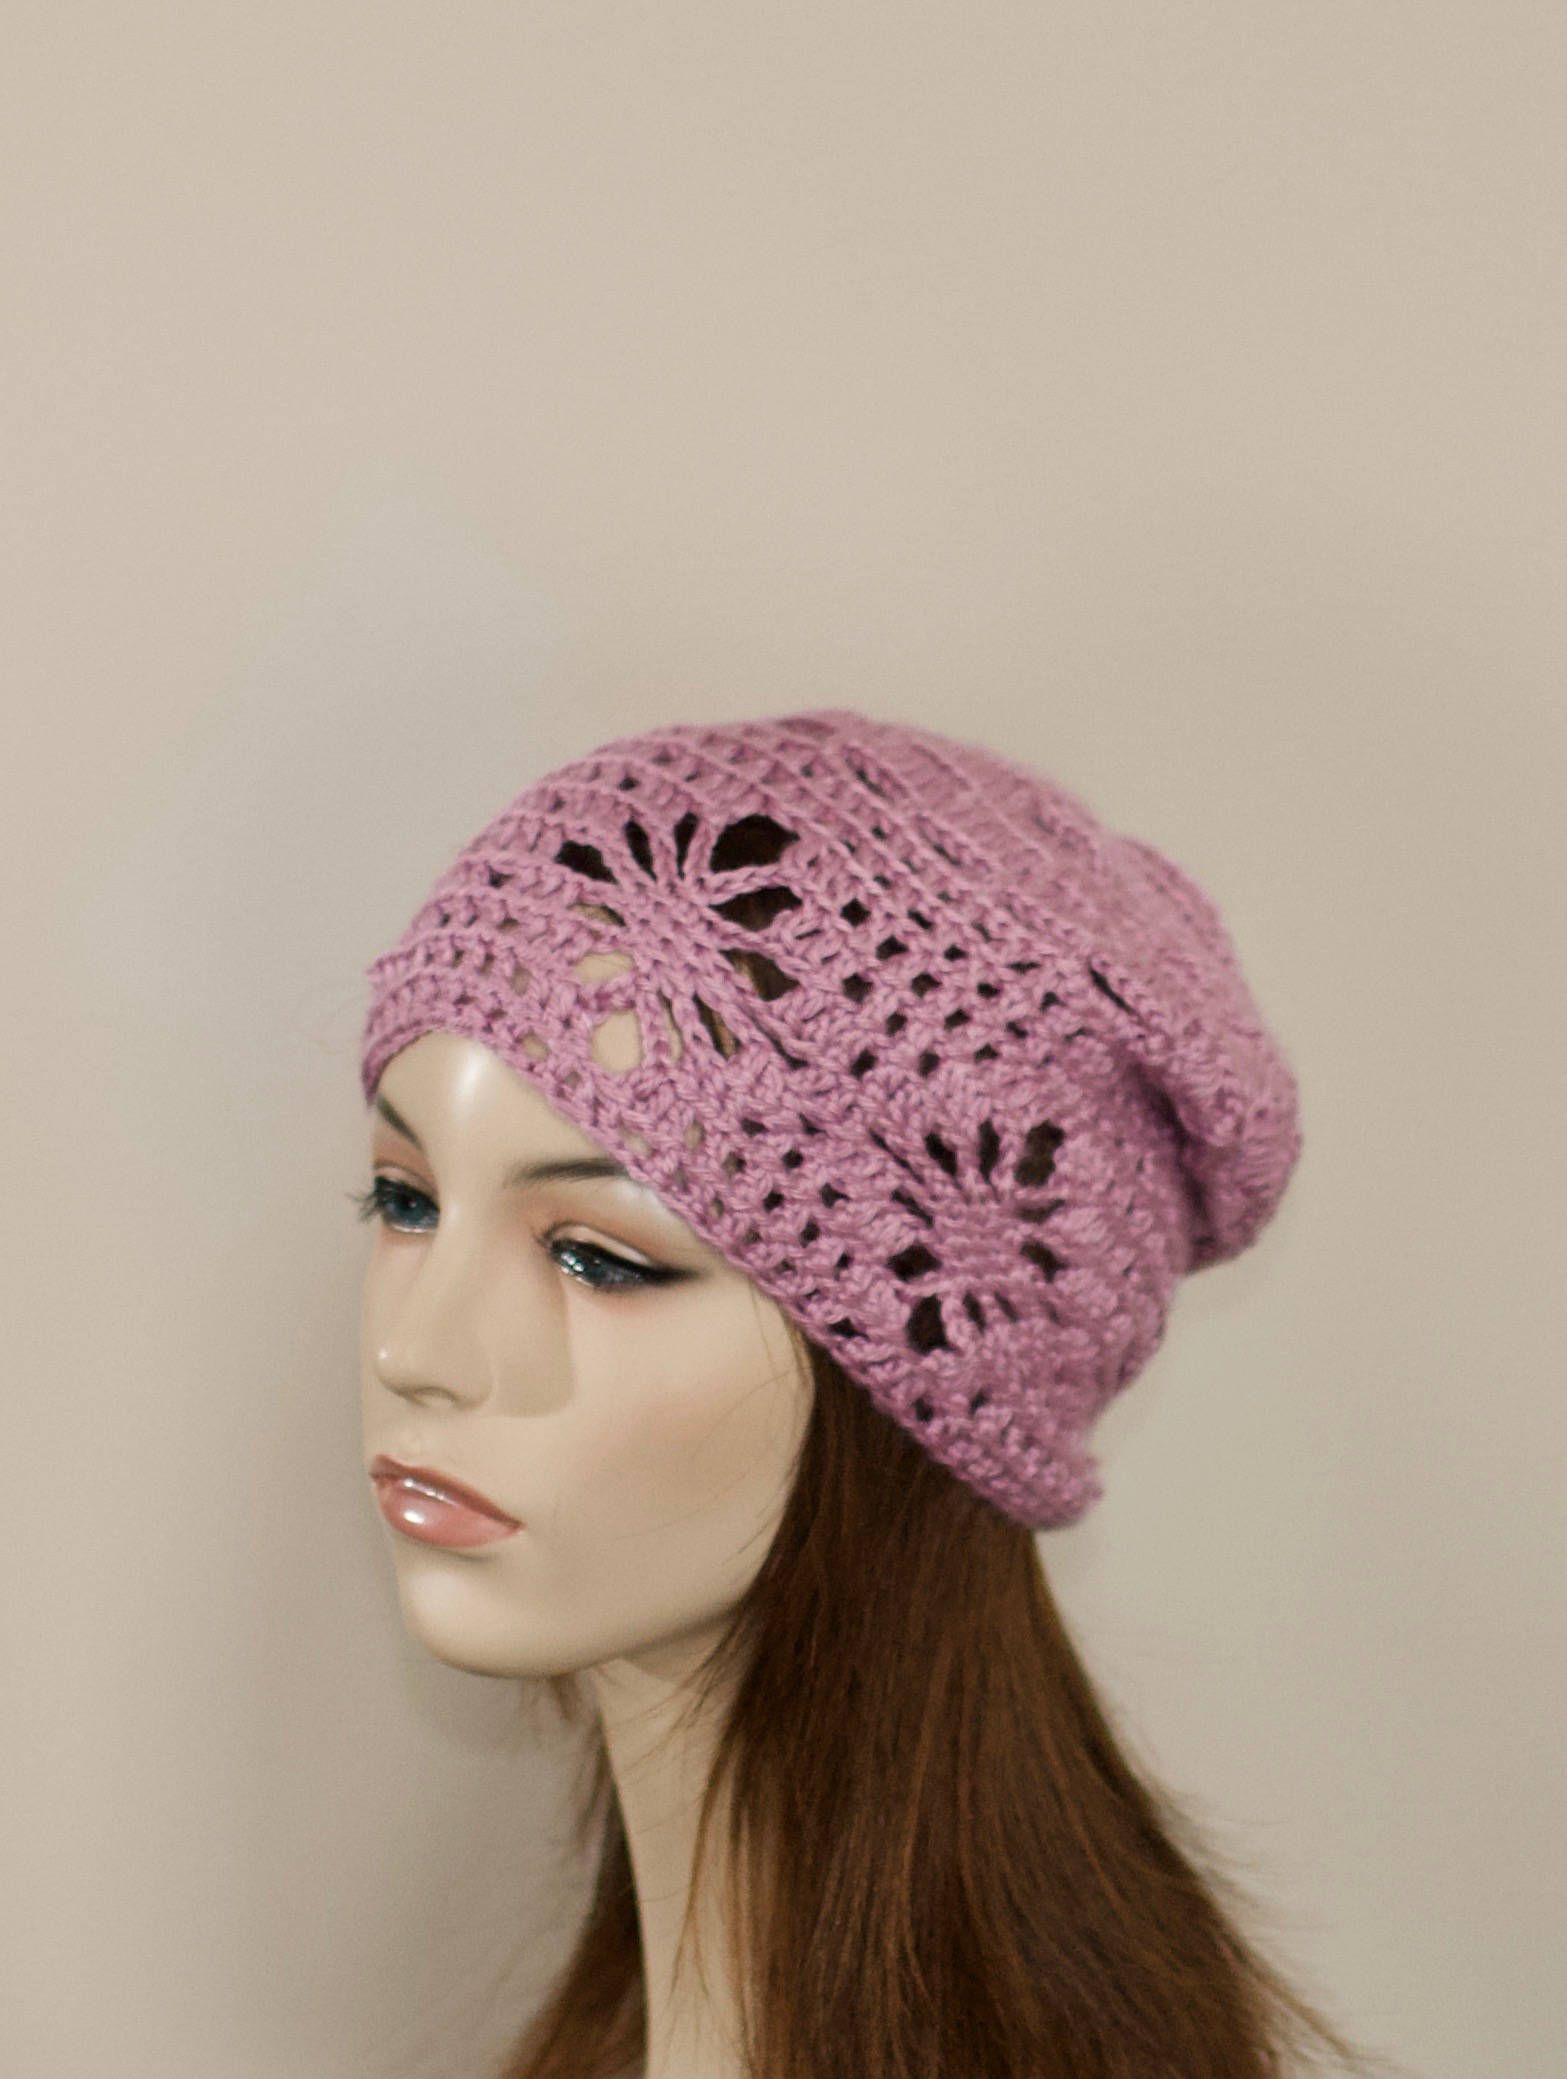 f1bf2a46c02 Spring Slouchy Beanie Women Hat Slouchy Beanie Summer Hat Chemo Hat CHOOSE  COLOR Peony Pink Chemo Slouchy Beanie Crochet Gift under 50 by lucymir on  Etsy